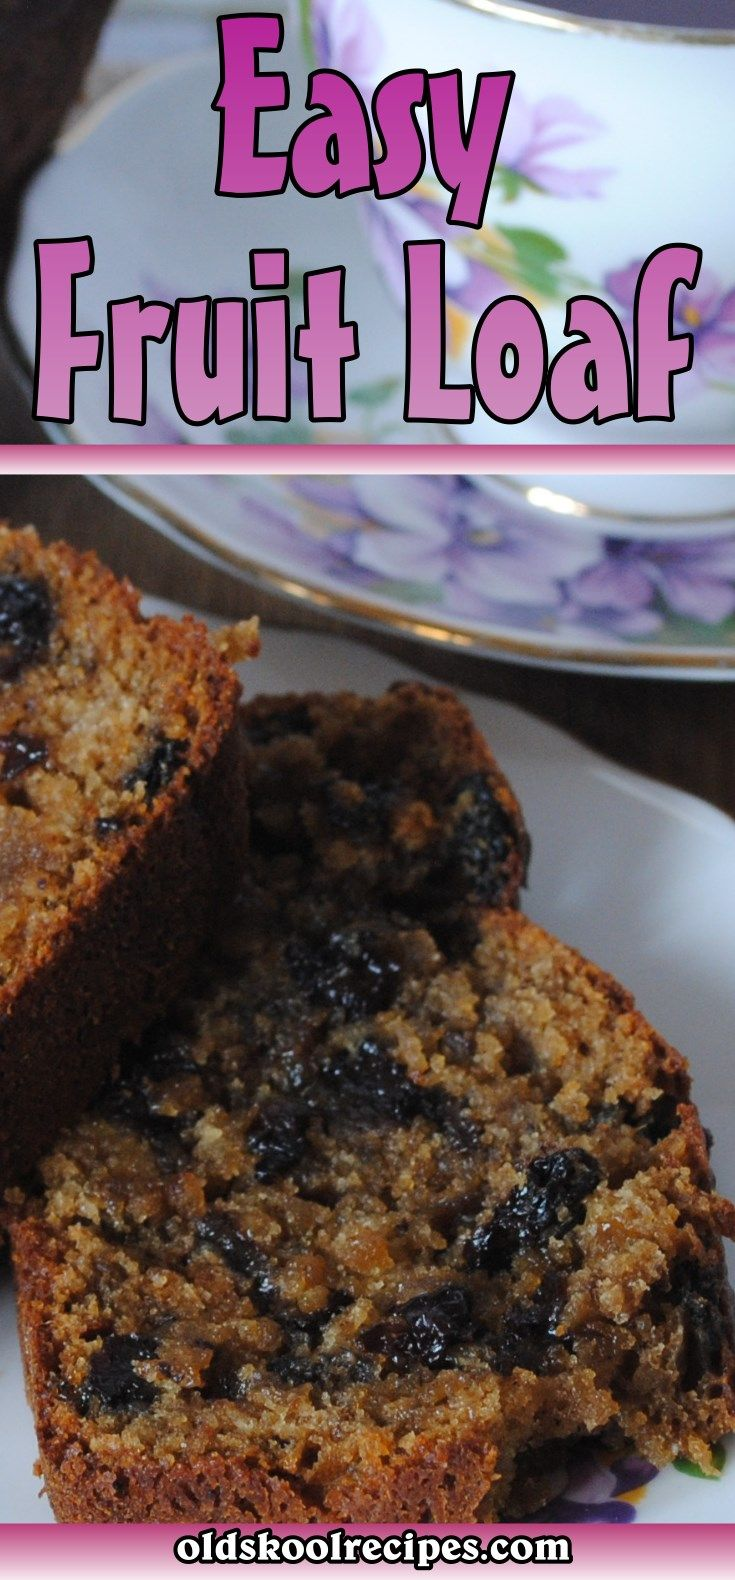 Easy Fruit Loaf Recipe - Old Skool Recipes  This Fruit Loaf recipe is really easy to make.  This Fruit Loaf recipe is a really quick to make.  The Fruit Loaf recipe freezes very well too.  Invite your friends along and enjoy a slice for dessert today, perfect with tea or coffee!